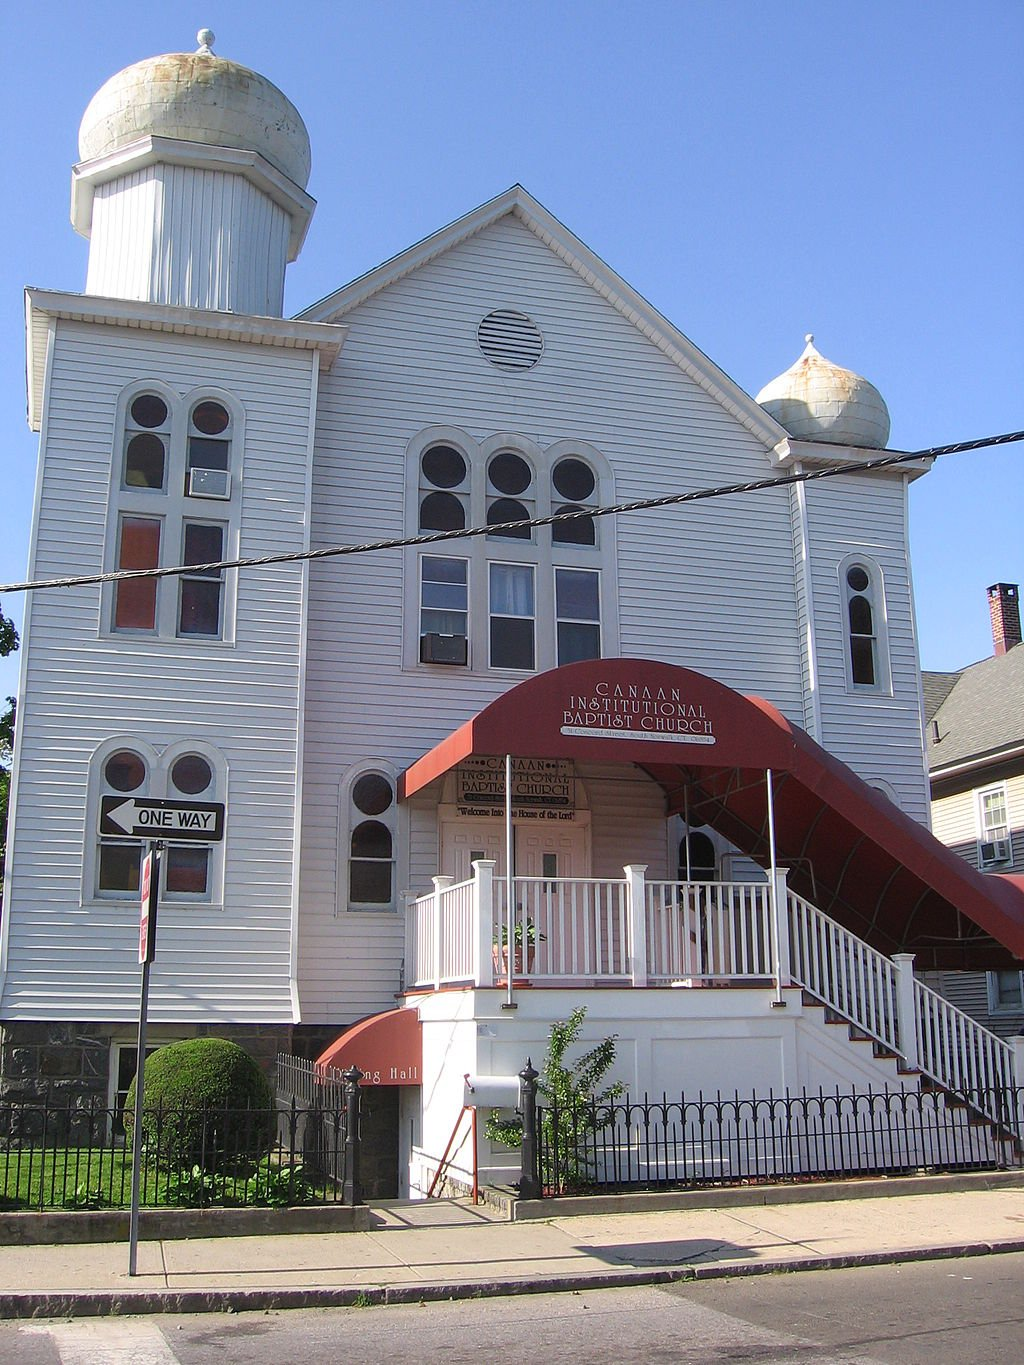 The former Beth Israel Synagogue is now the Canaan Institutional Baptist Church. The building is unique in that it is the only known Jewish temple in the state featuring onion domes.